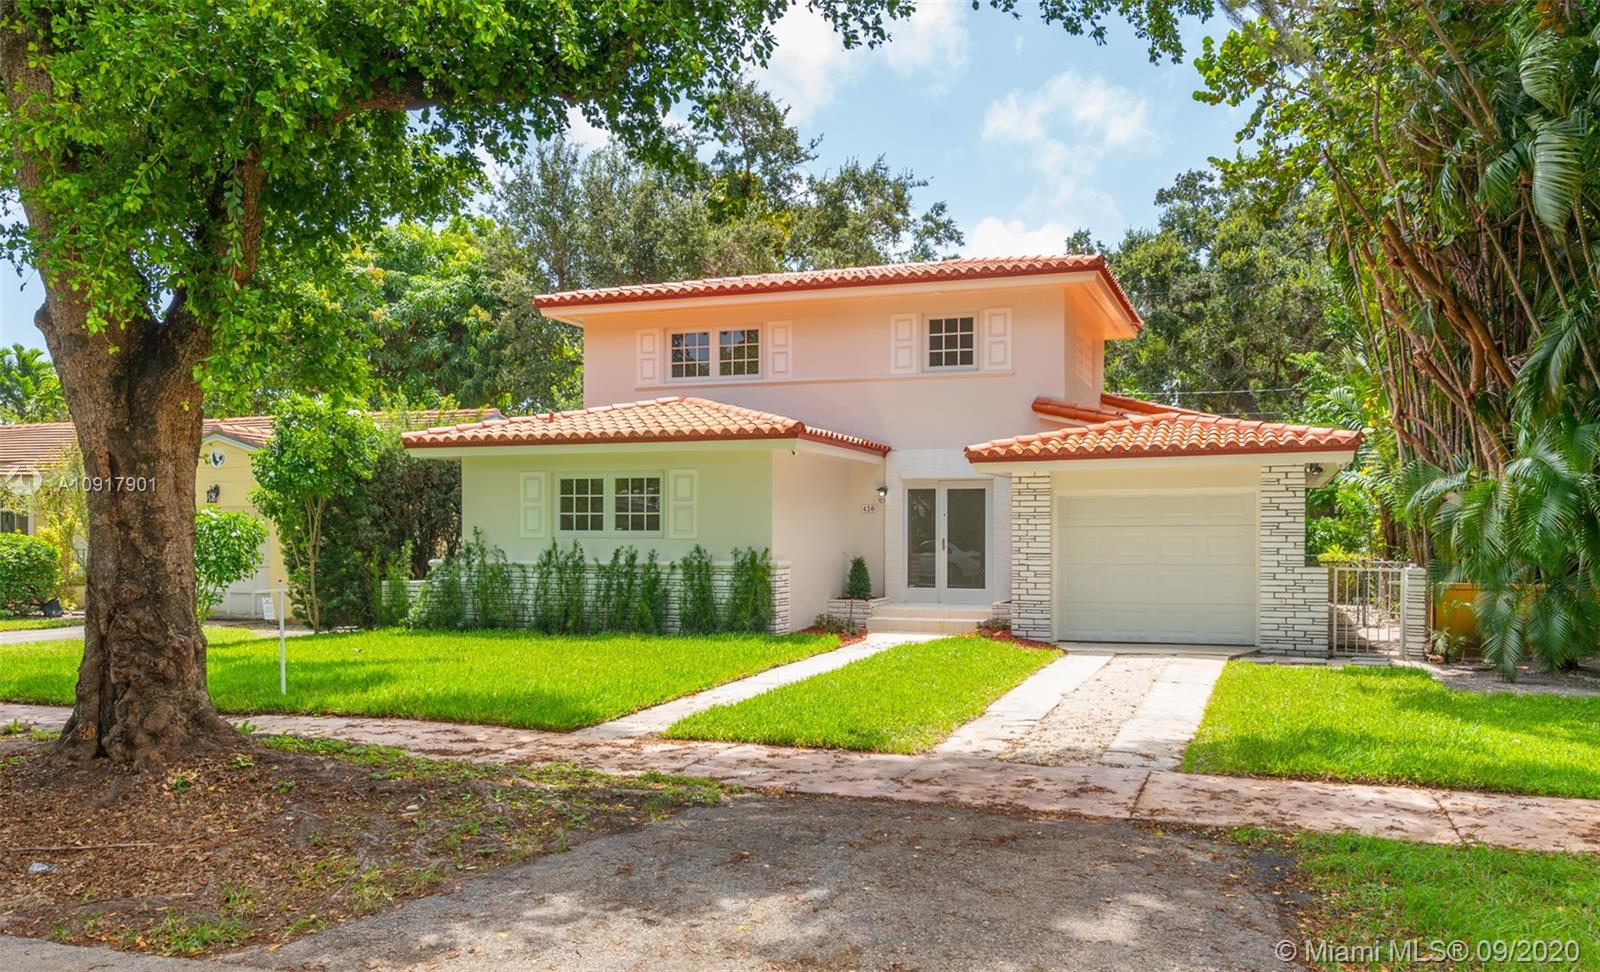 420  Aledo Ave  For Sale A10917901, FL